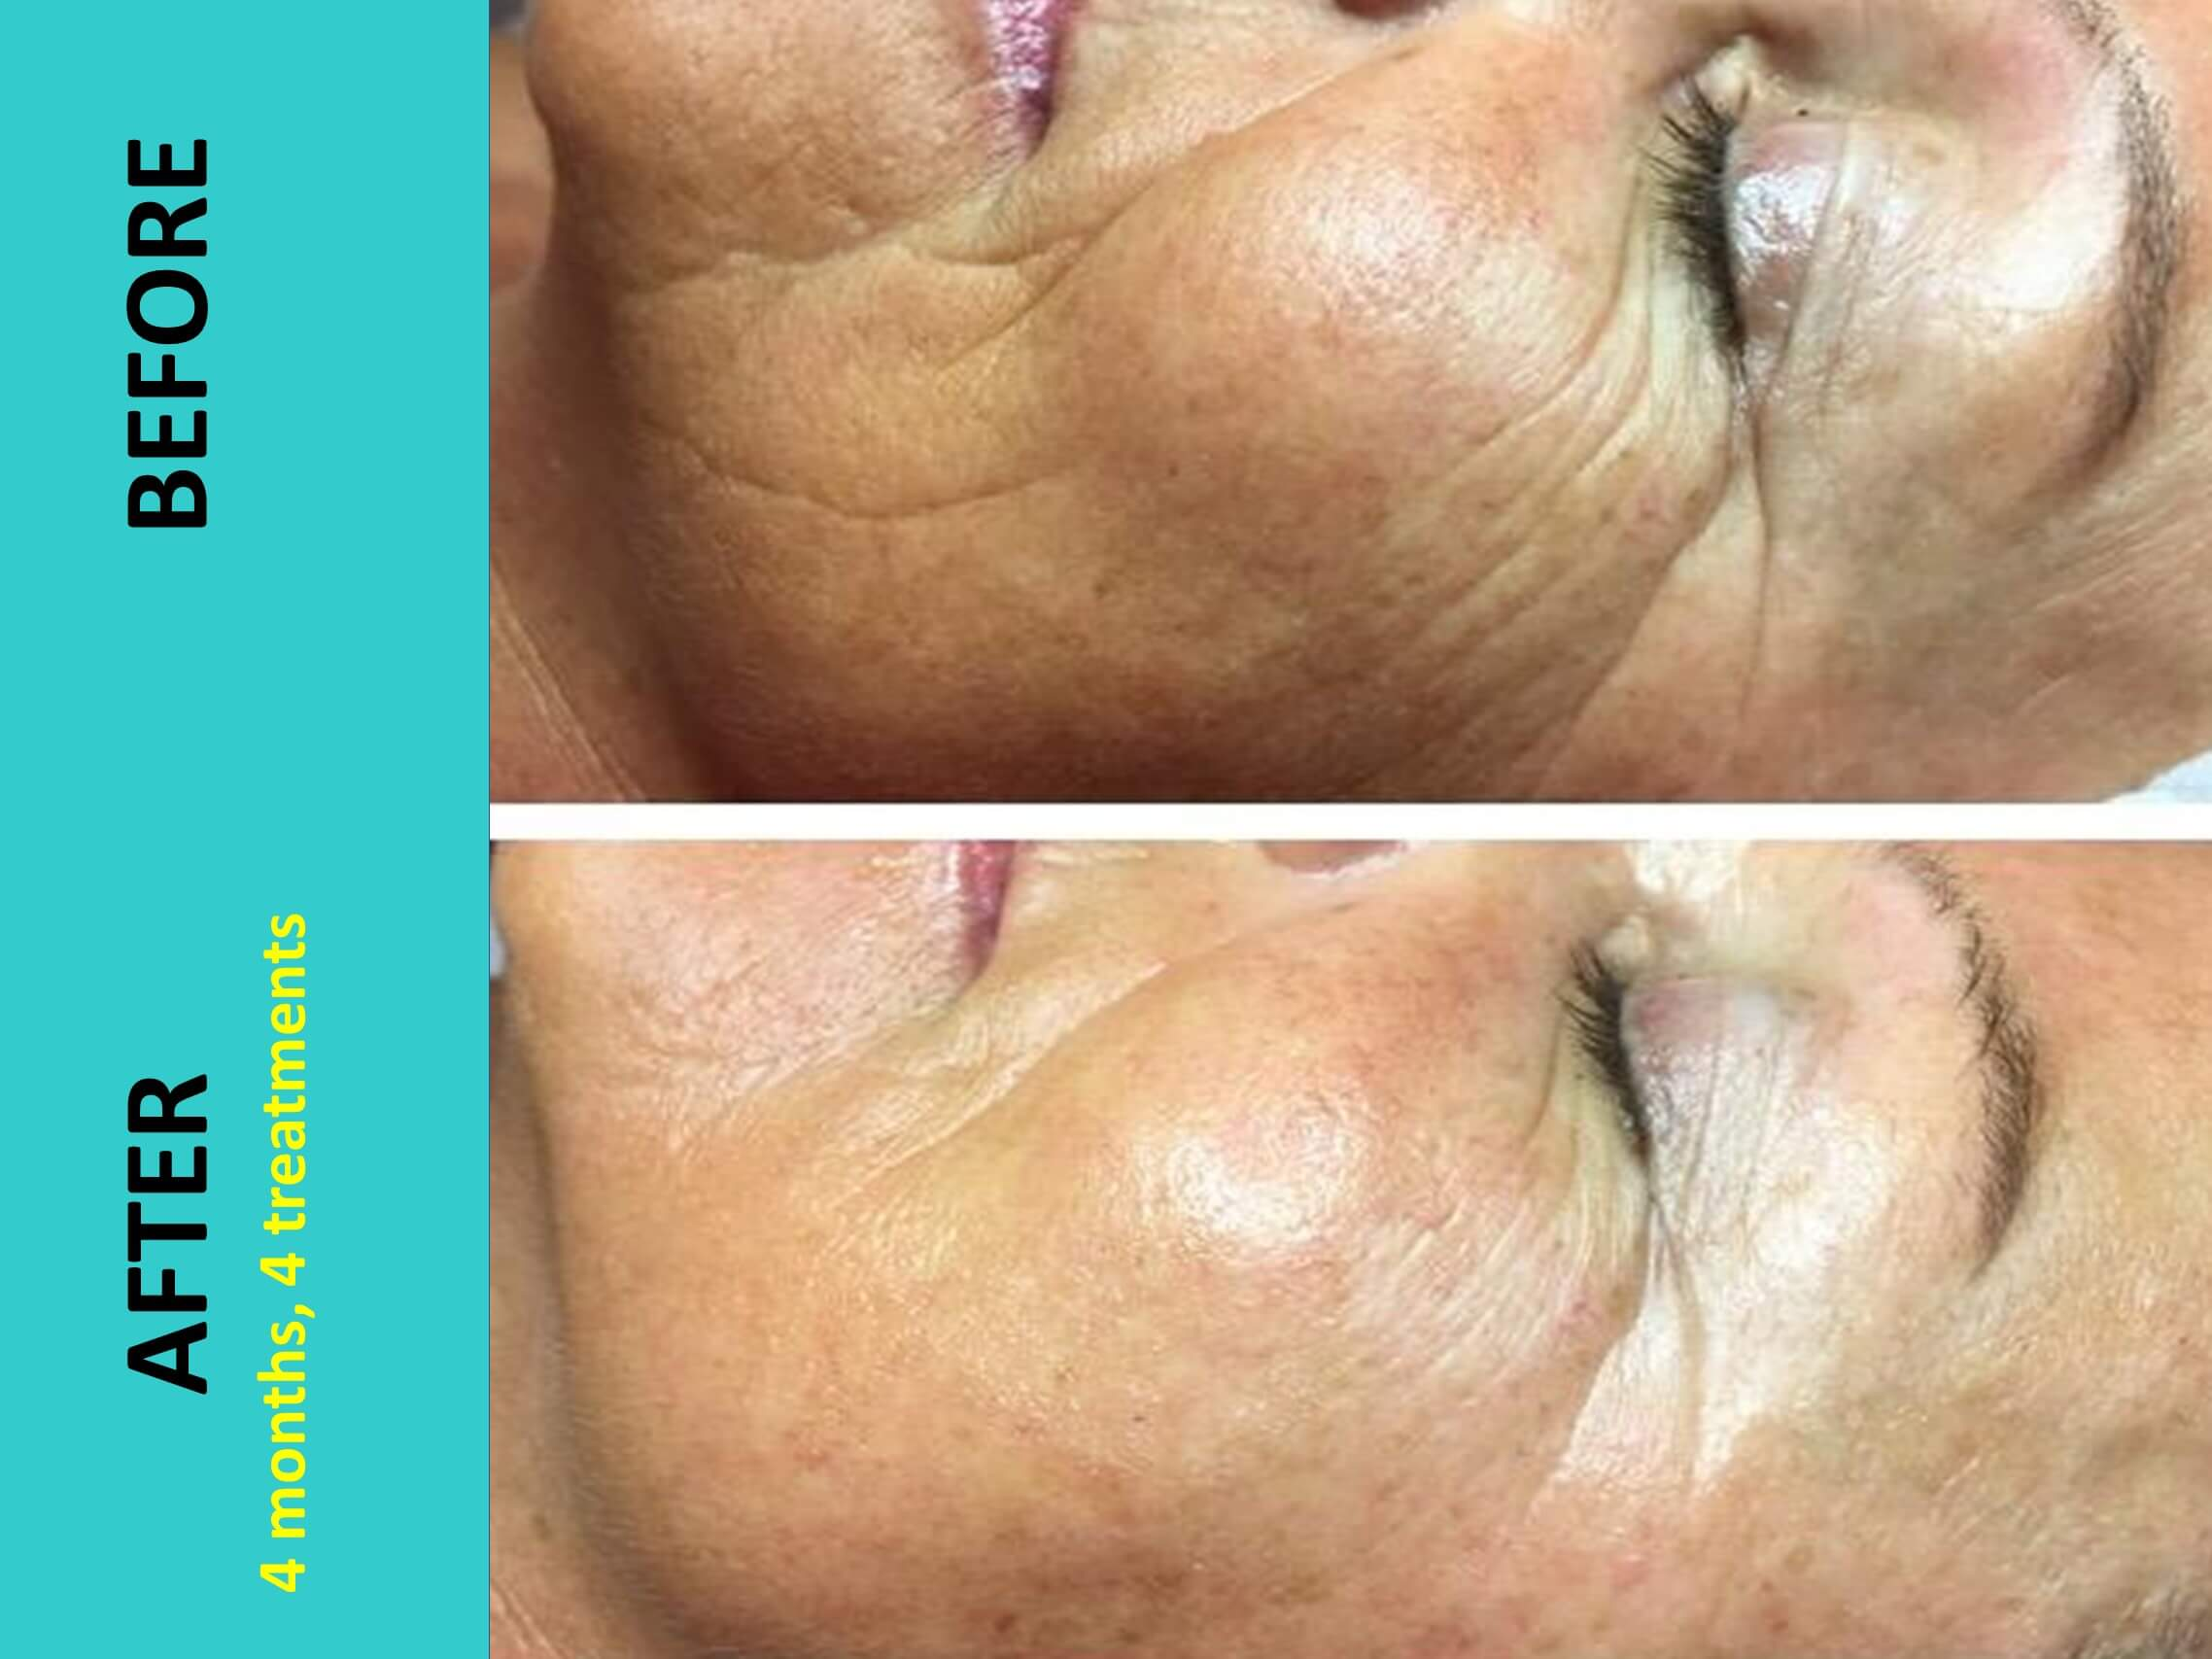 New Face after 4 treatments - simply incredible results!